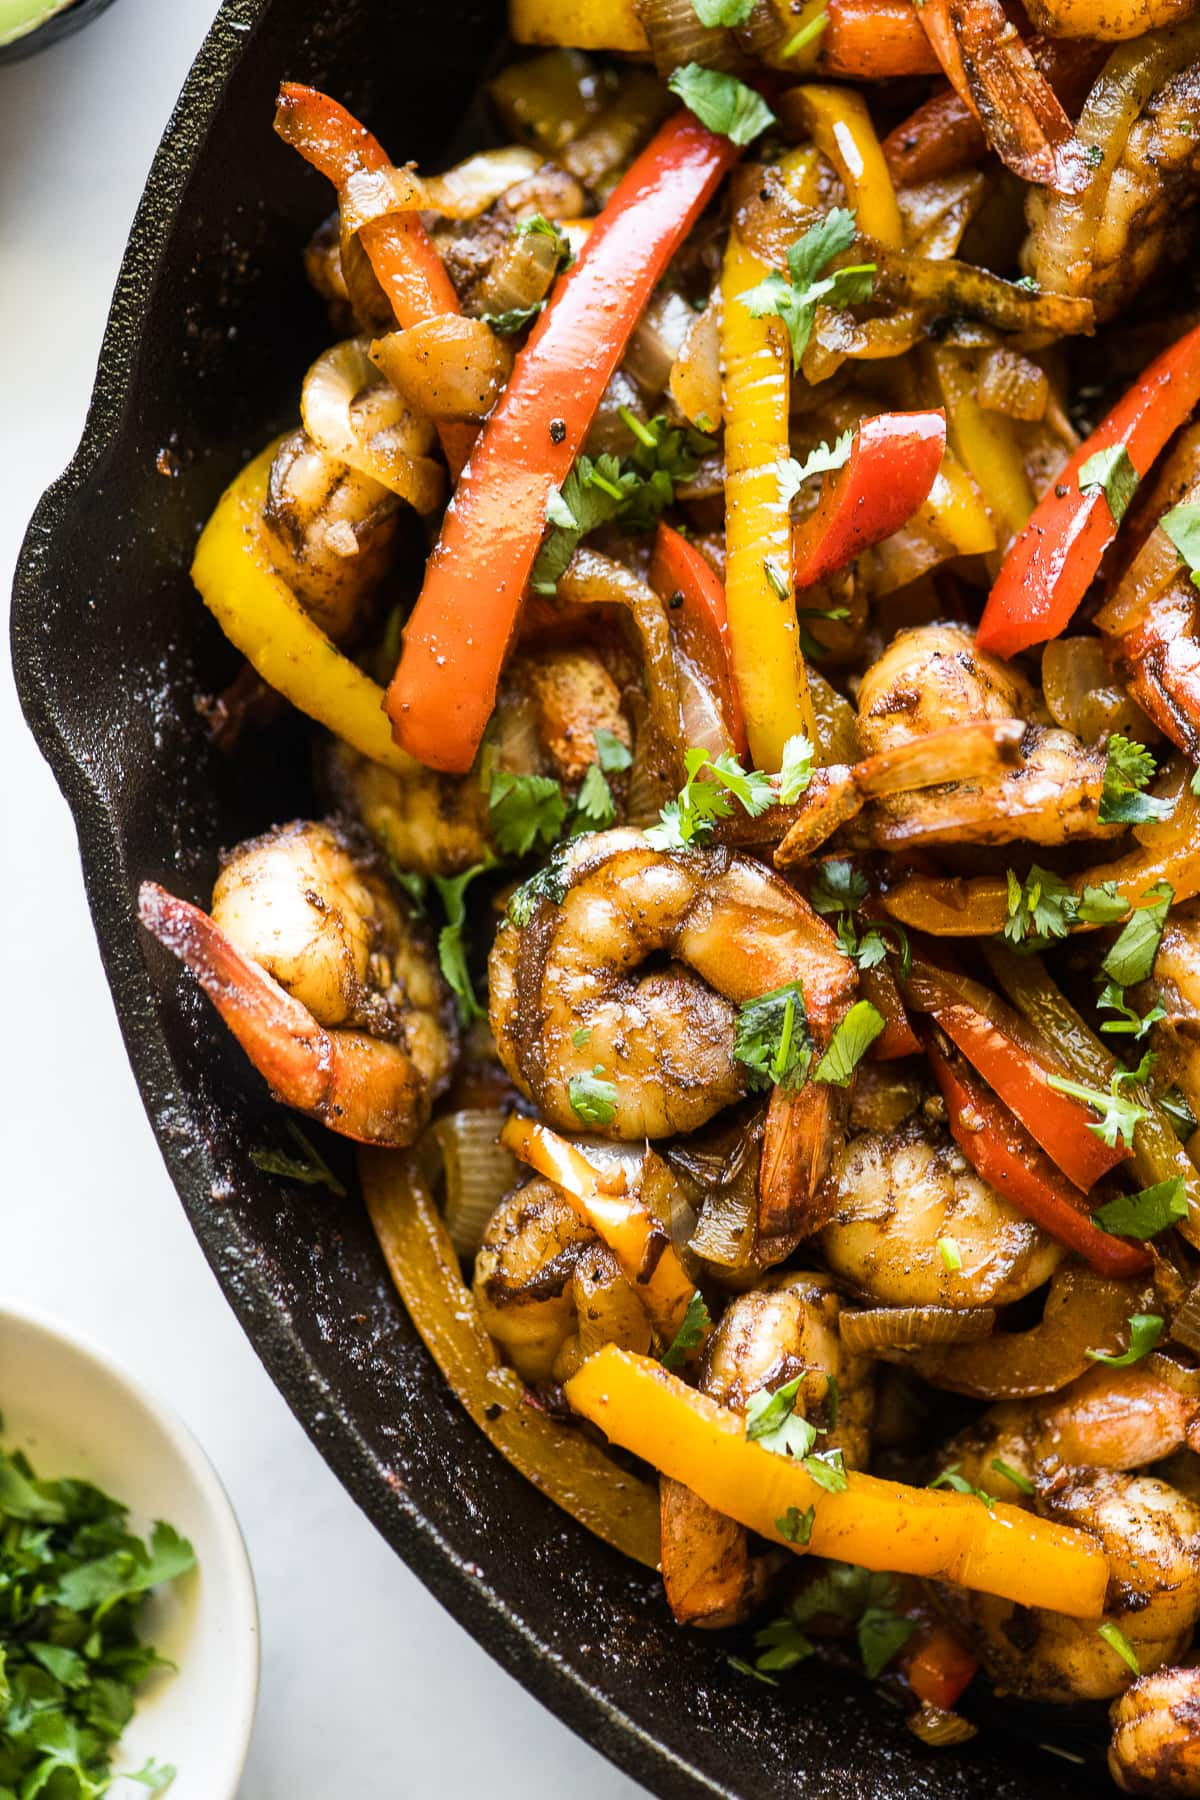 Shrimp fajitas with bell peppers in a skillet.